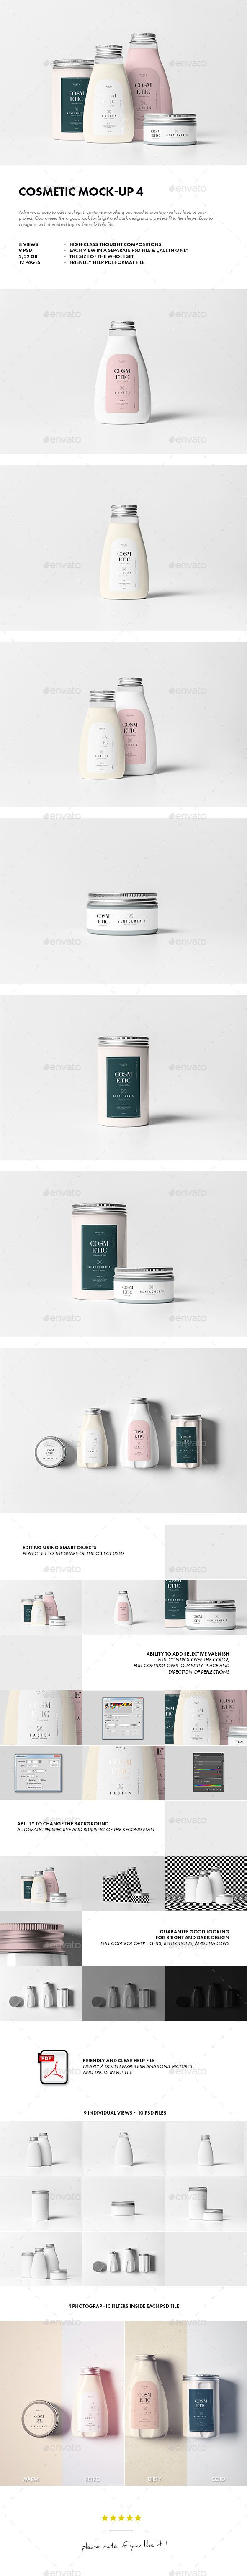 Cosmetic Mock Up Design Download Graphicriver